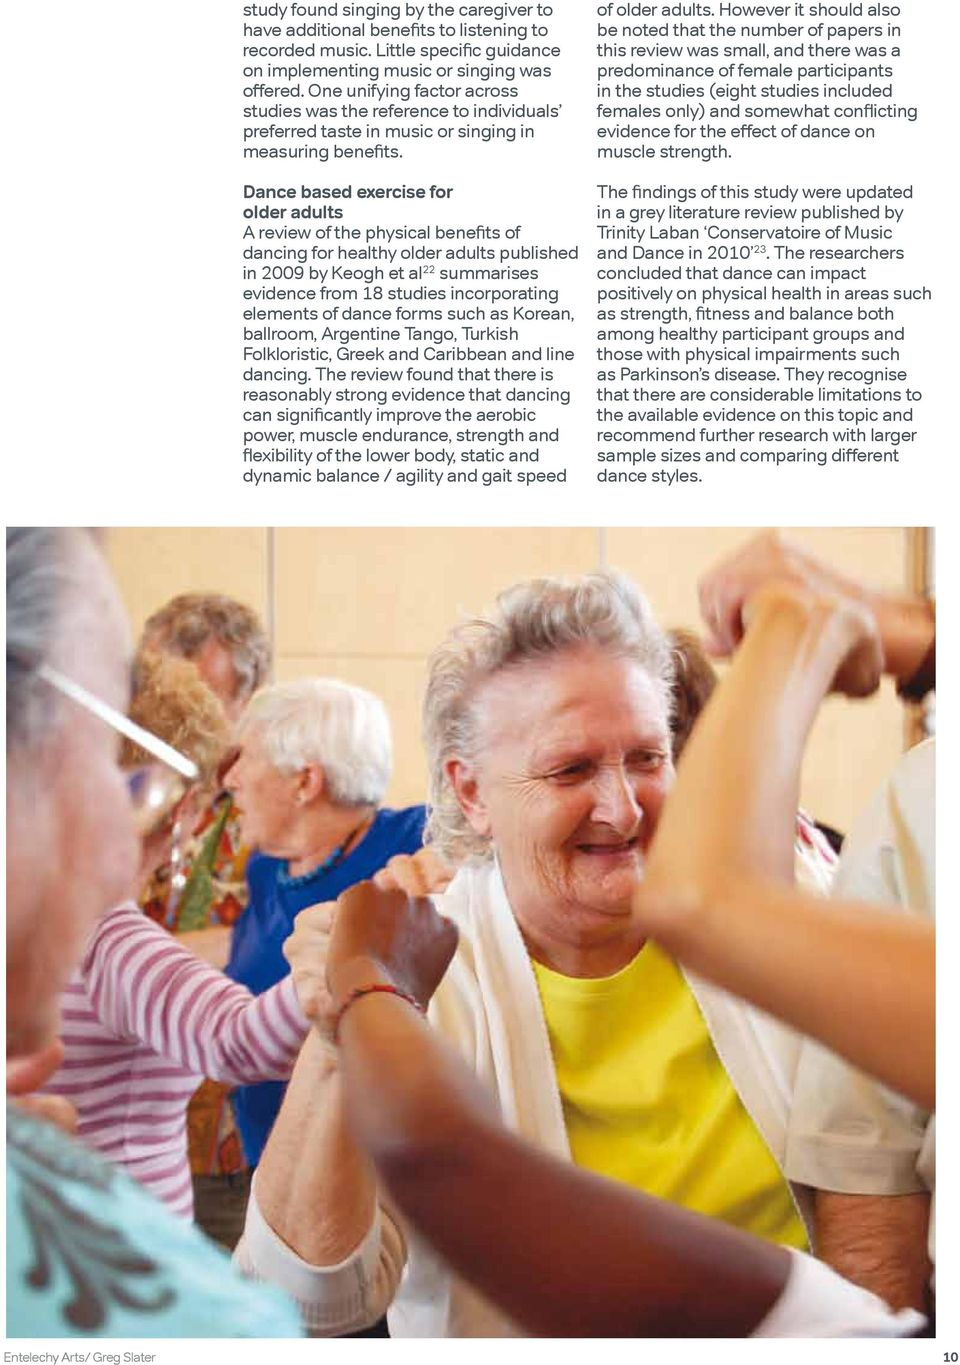 Dance based exercise for older adults A review of the physical benefits of dancing for healthy older adults published in 2009 by Keogh et al 22 summarises evidence from 18 studies incorporating